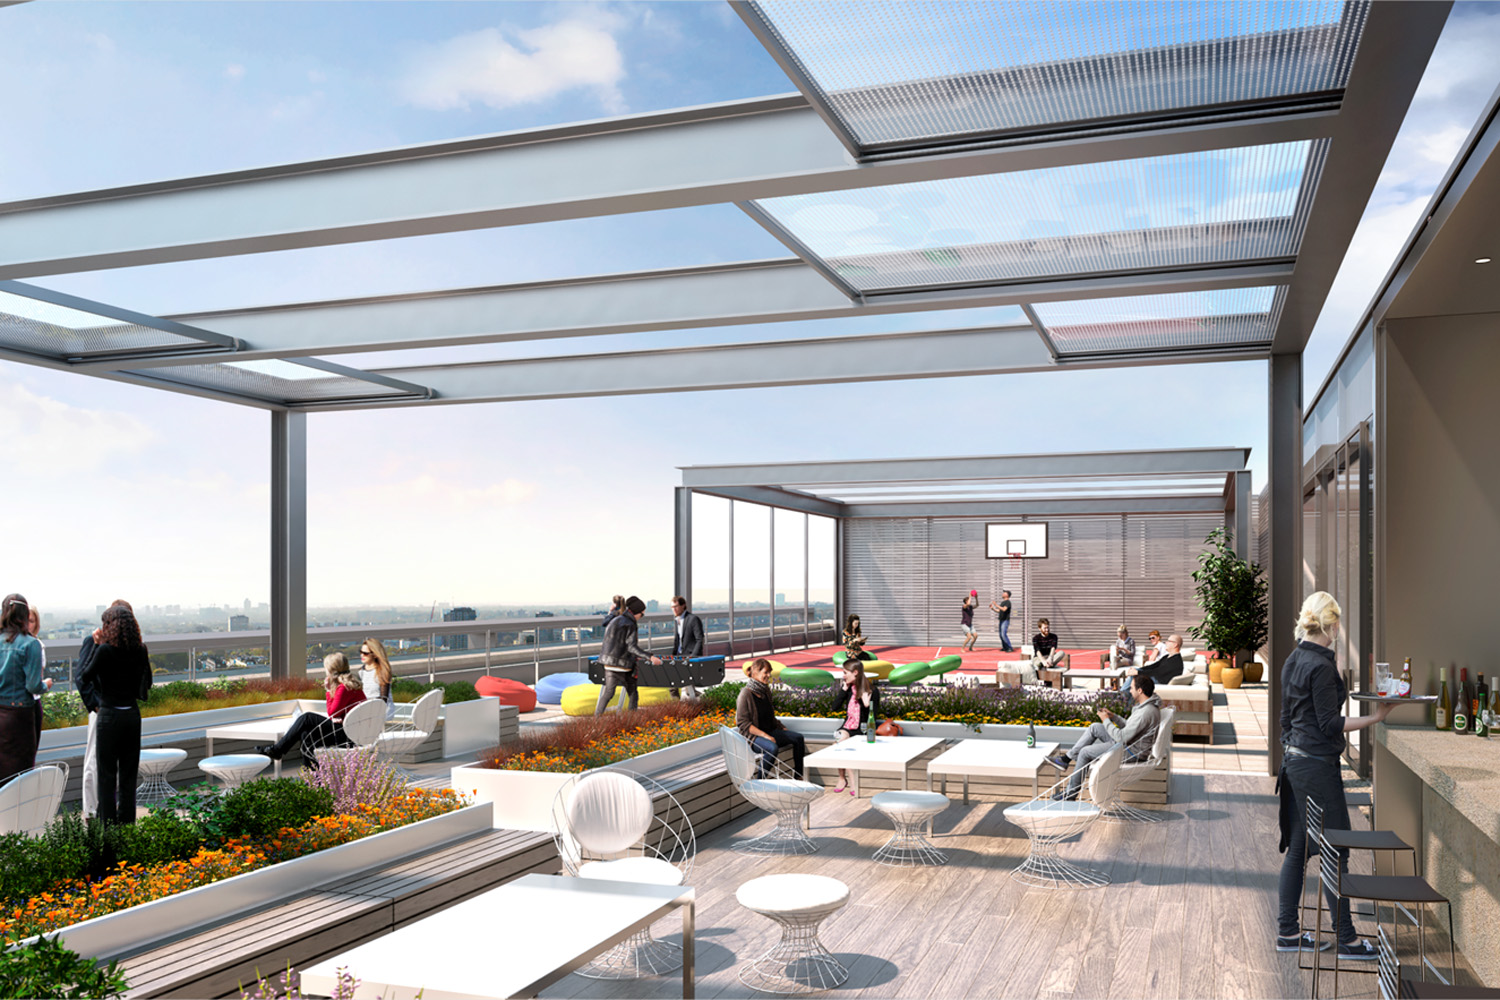 Paddington Roofterrace